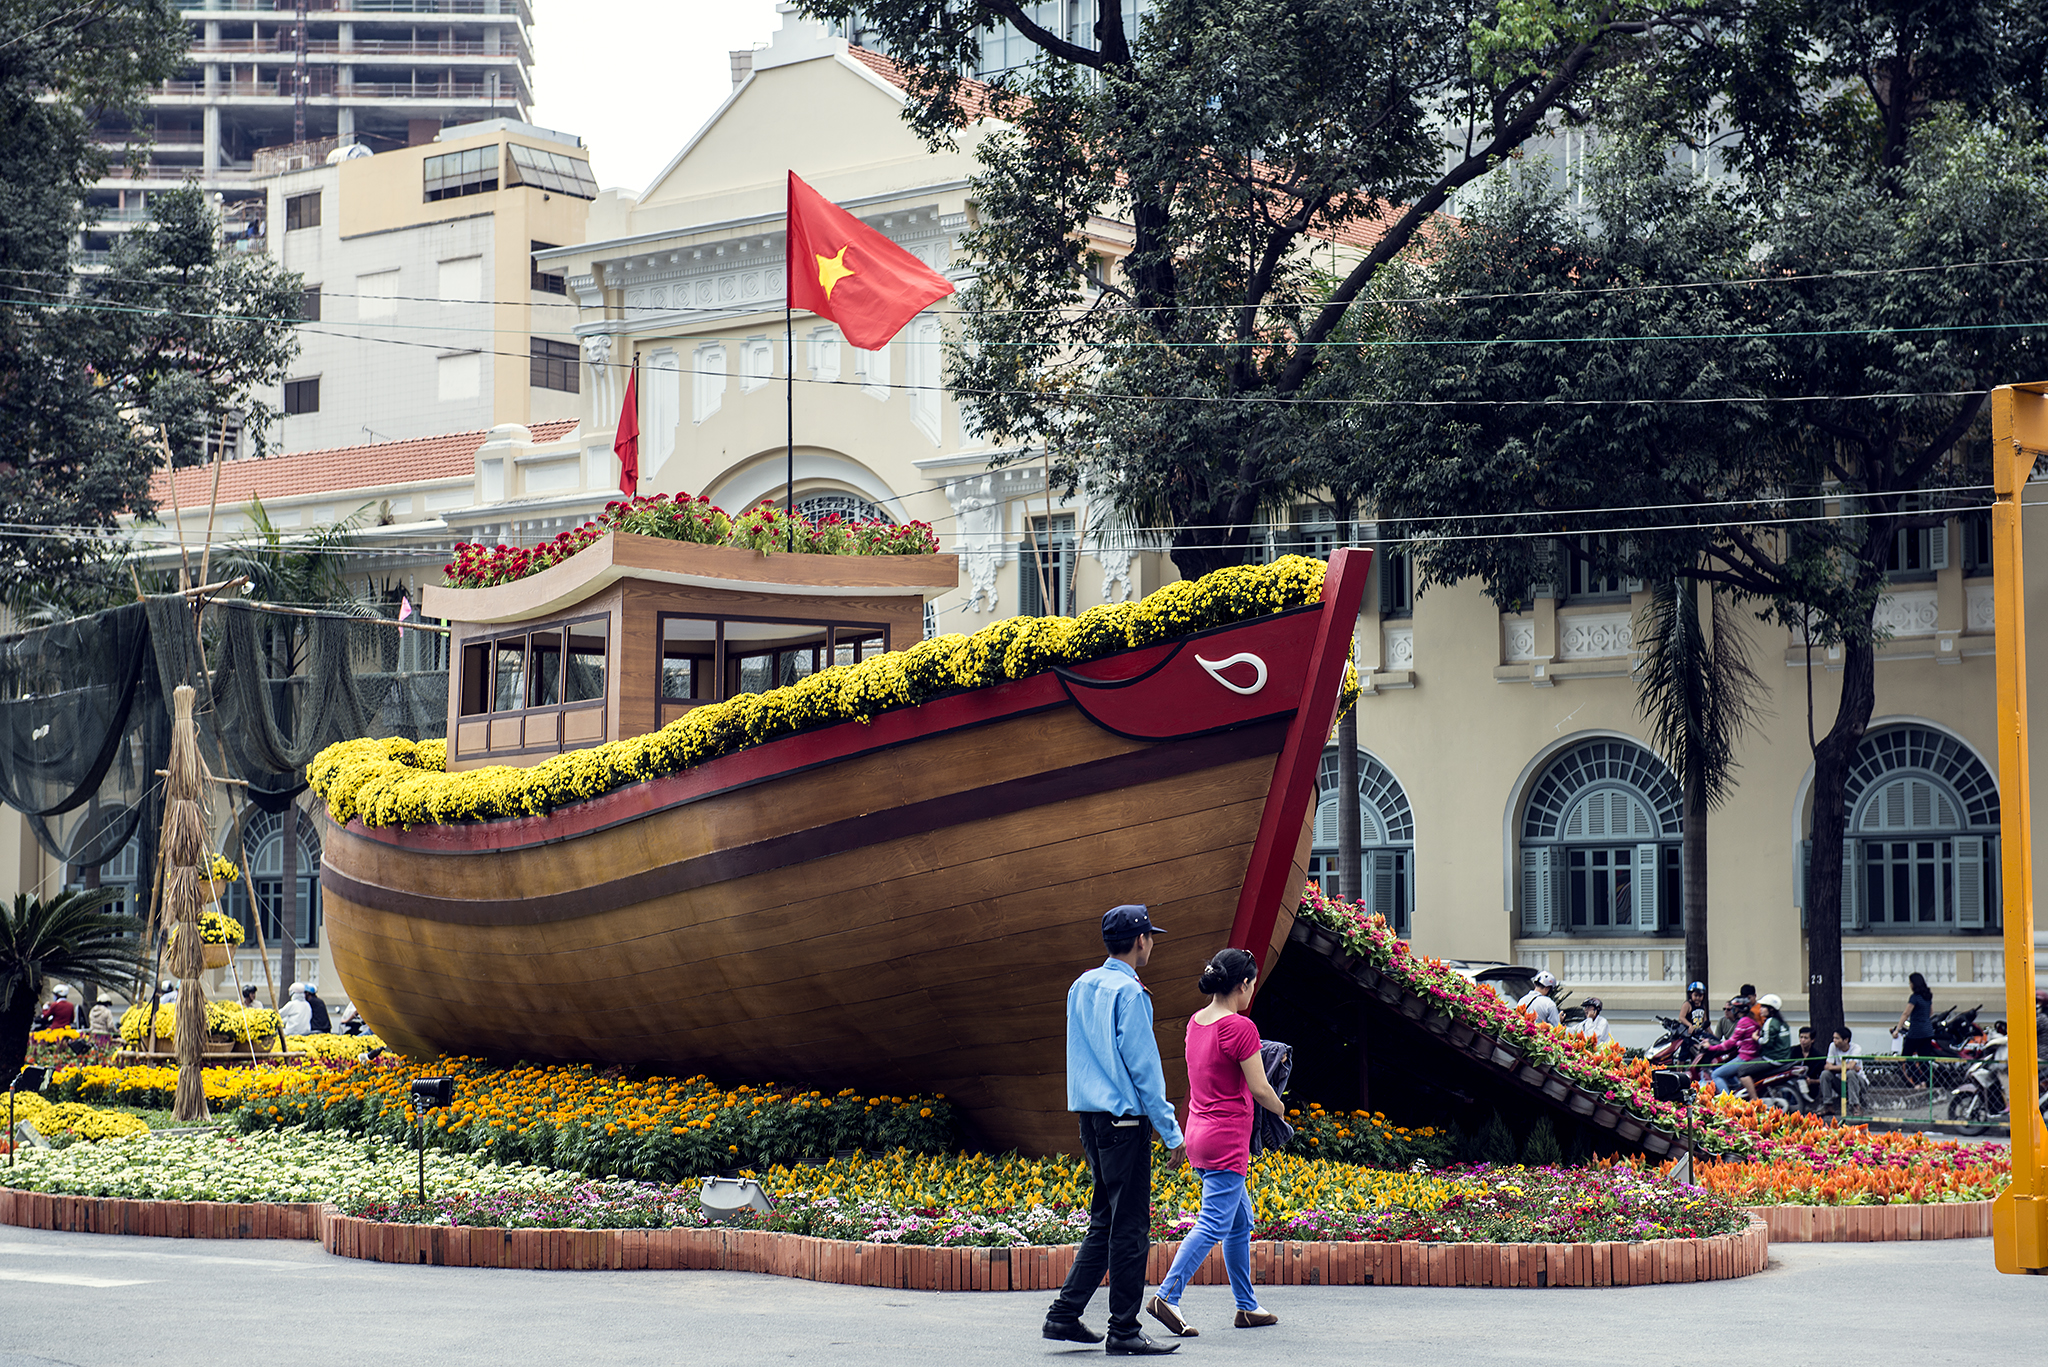 Wooden boat with yellow flowers and Vietnamese flag